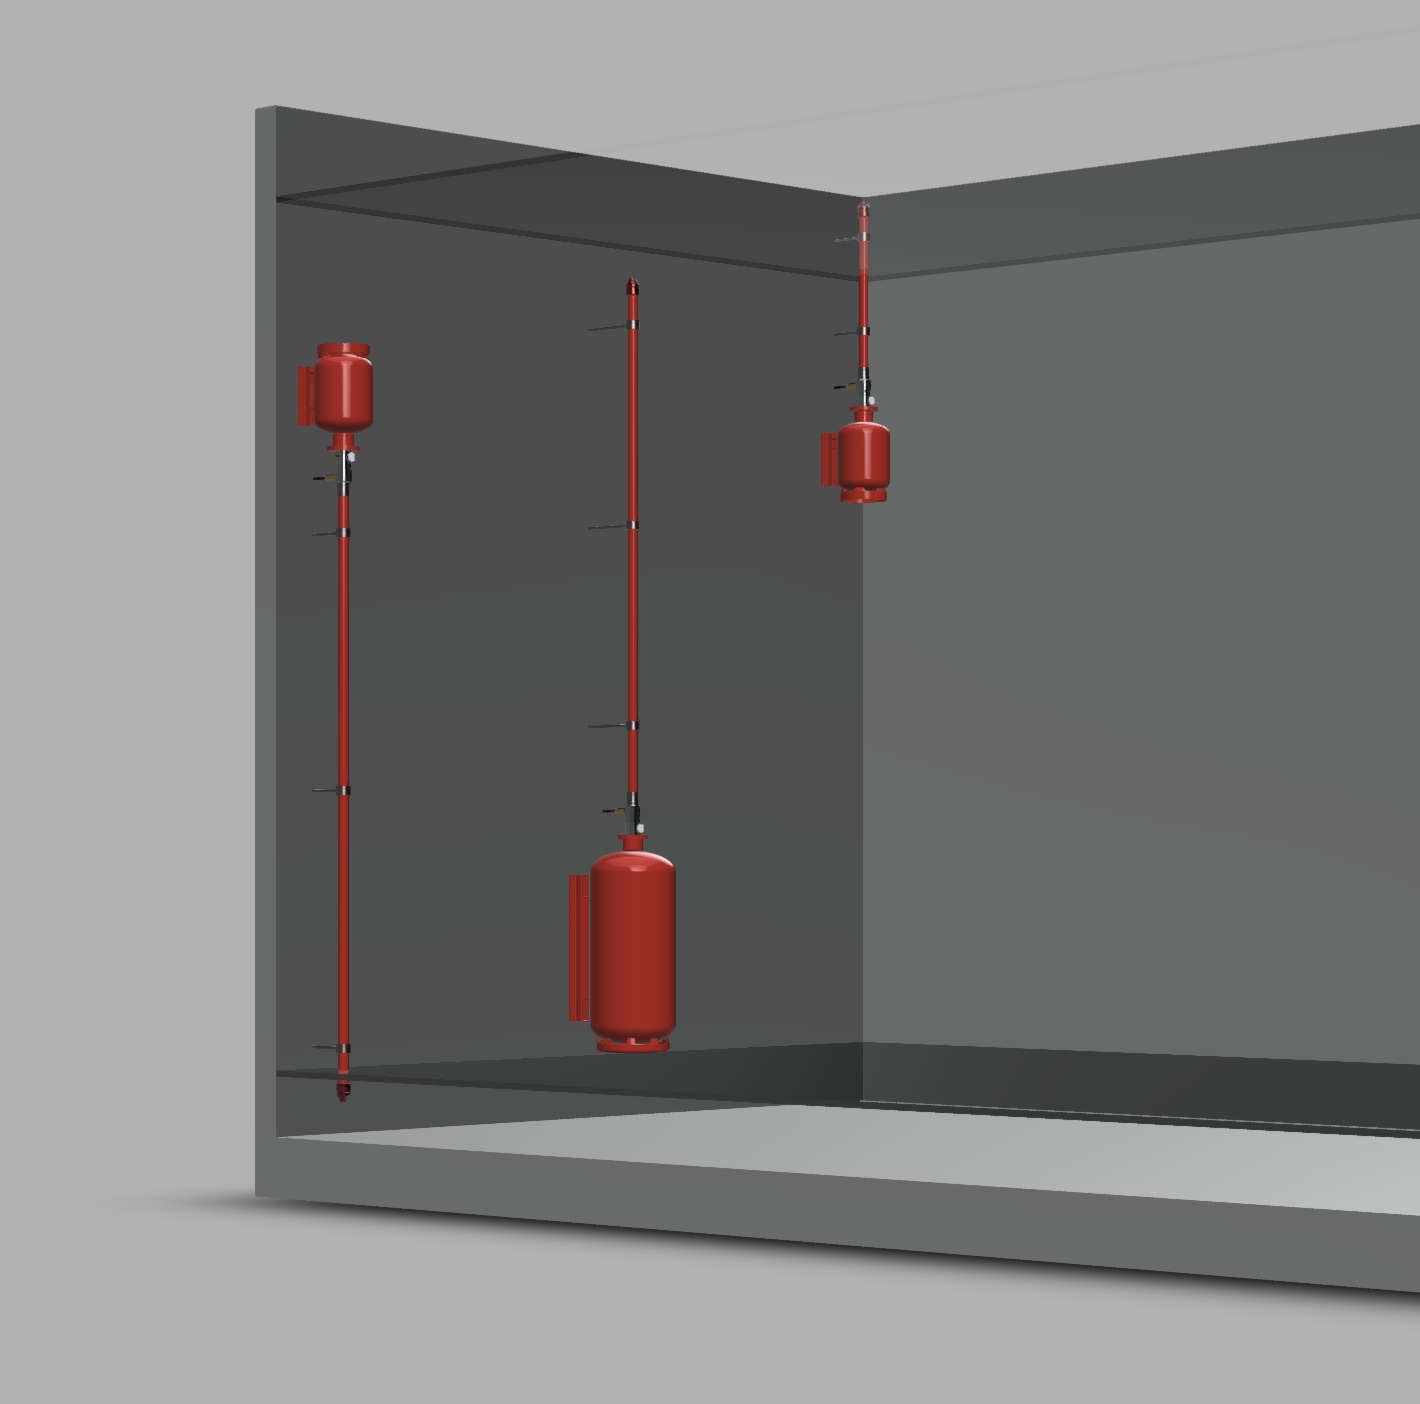 Modular Pre-Engineered Piped Fire Suppression System